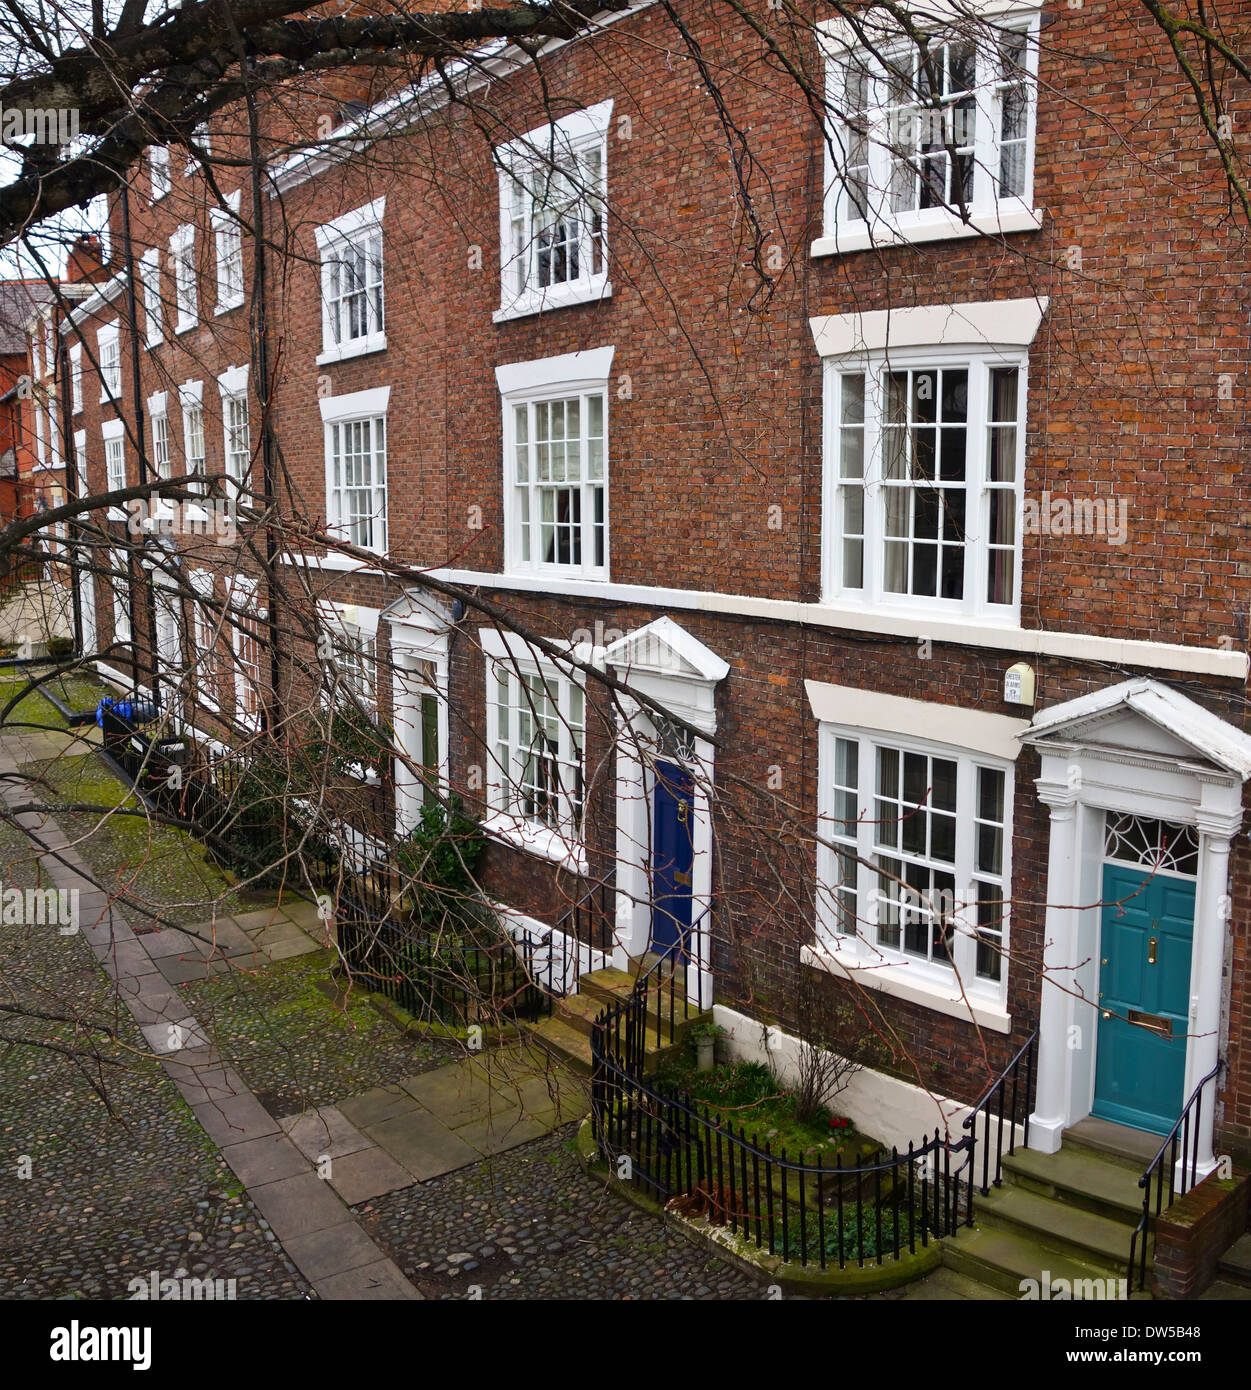 Edwardian Victorian terrace town house Chester - Stock Image